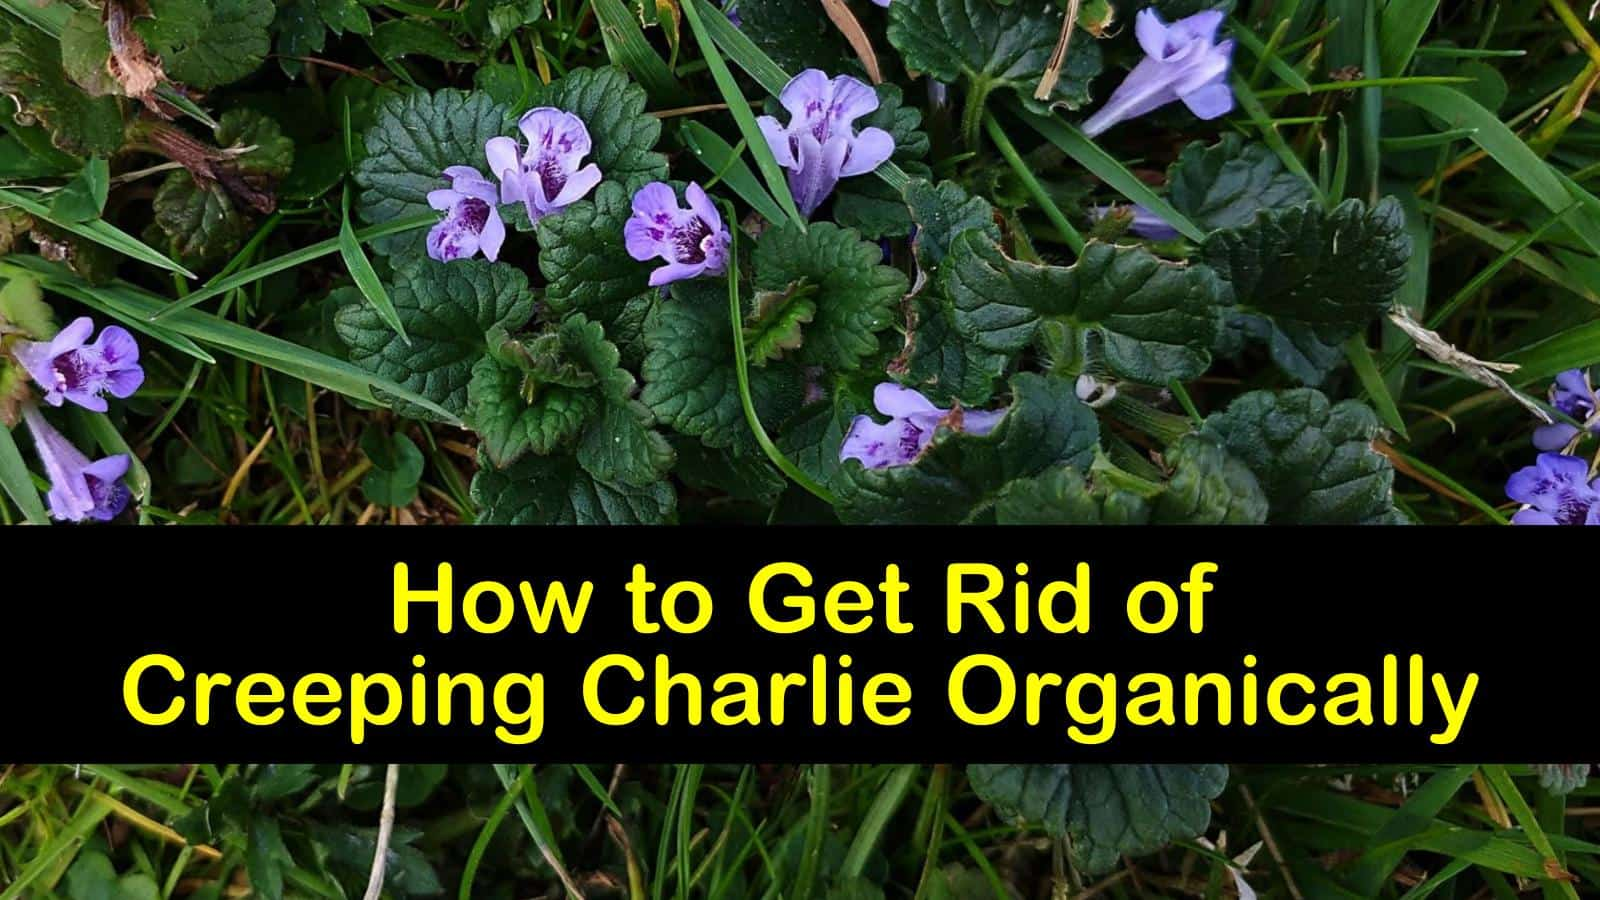 how to get rid of creeping charlie organically titleimg1